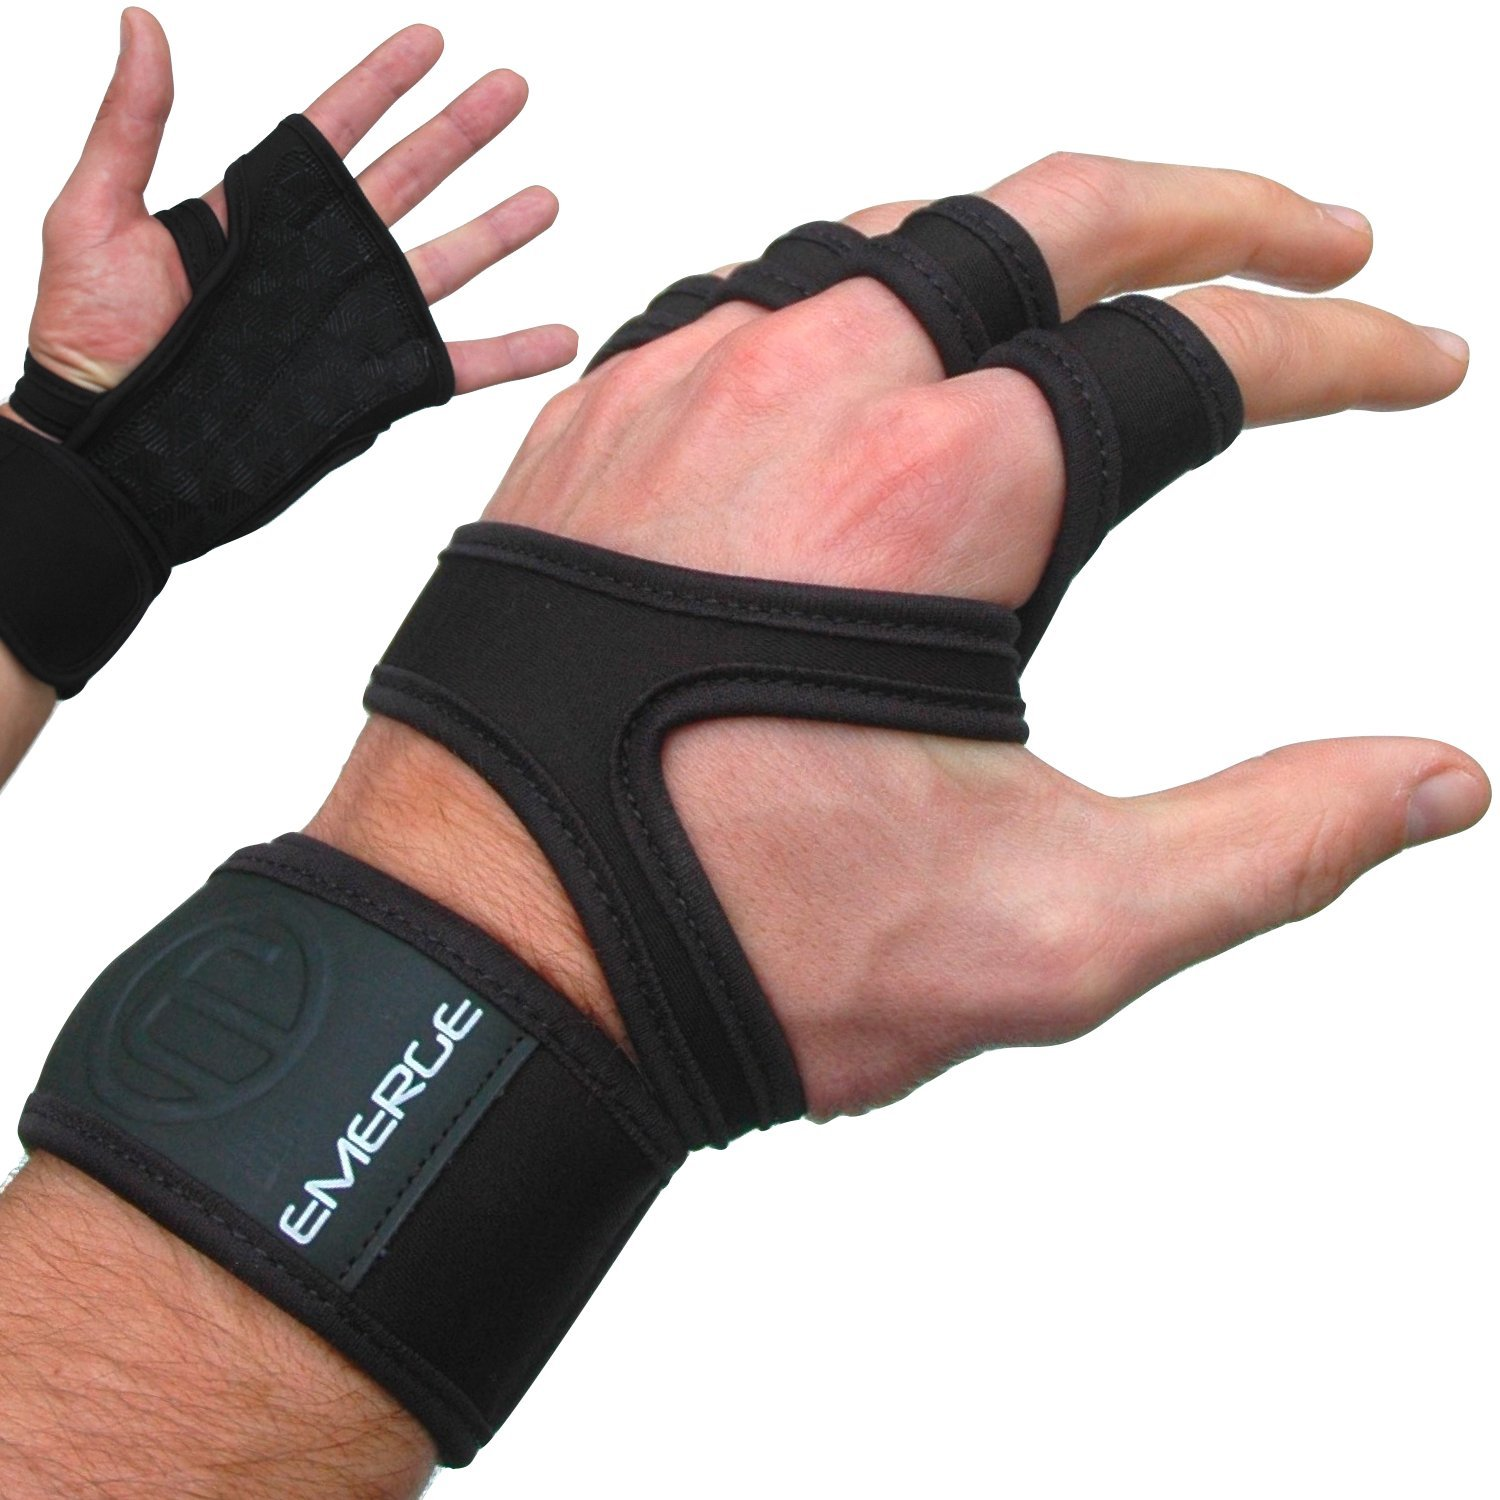 Emerge Fitness Pullup Gloves